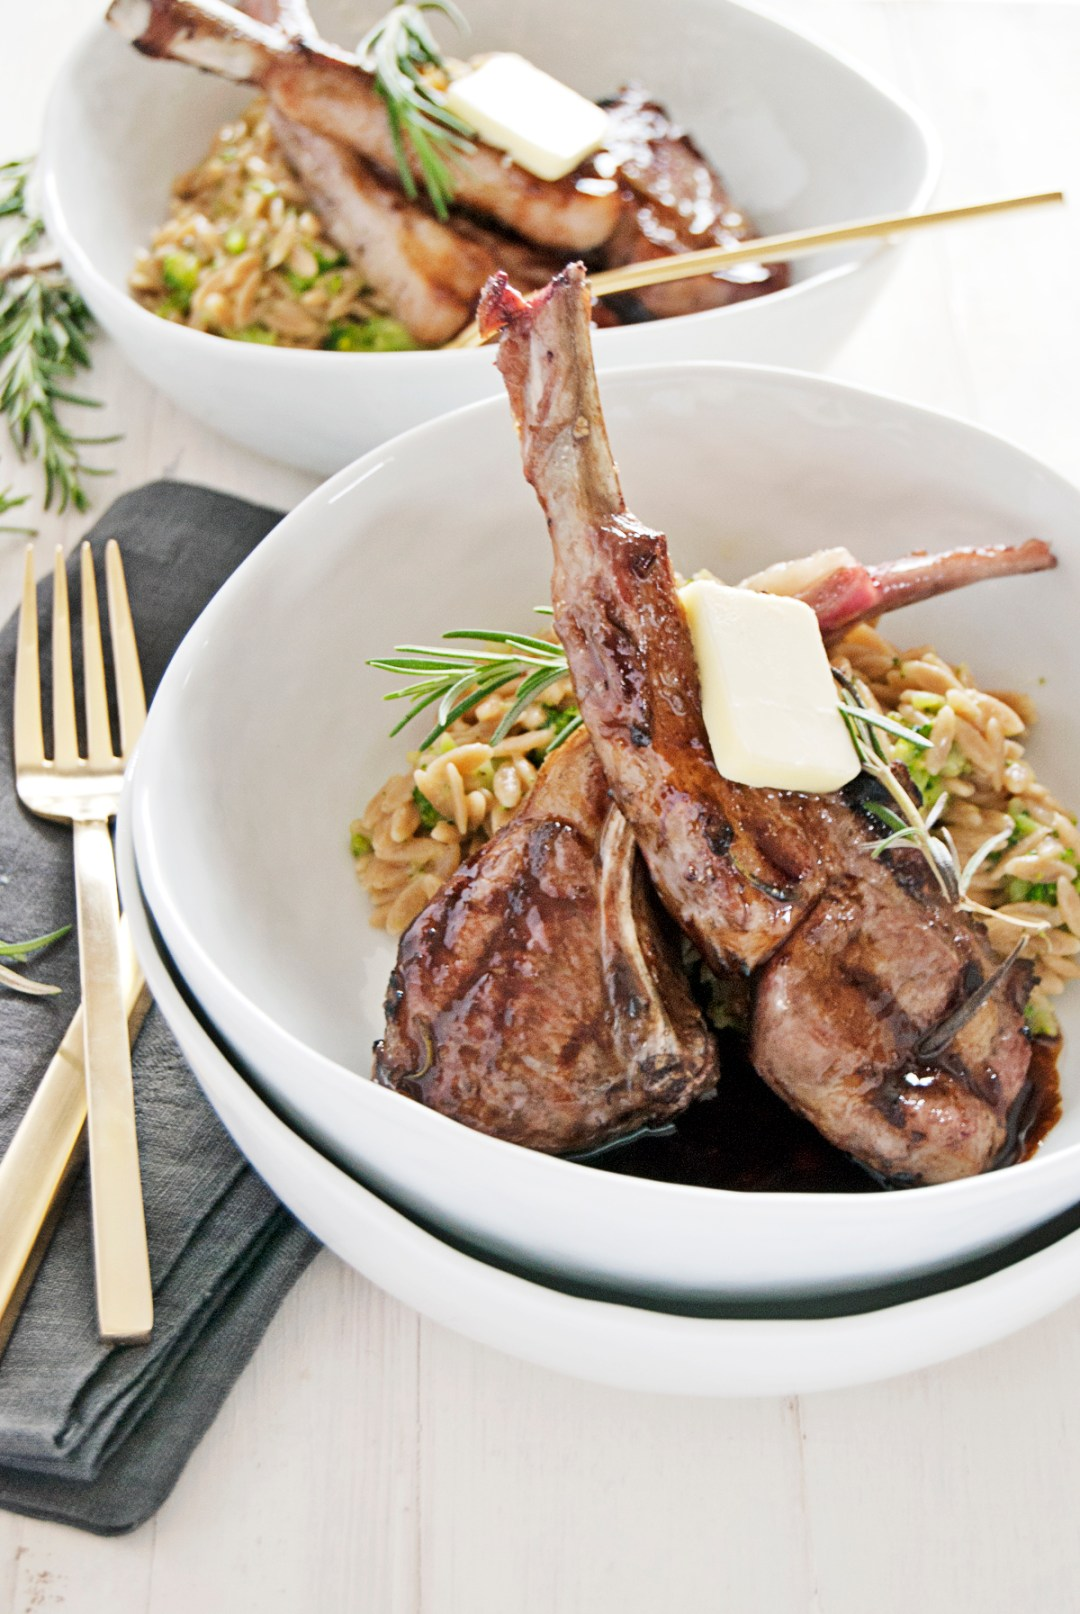 These beautiful grilled lamb chops are paired with a tasty and quick balsamic brown butter pan sauce.